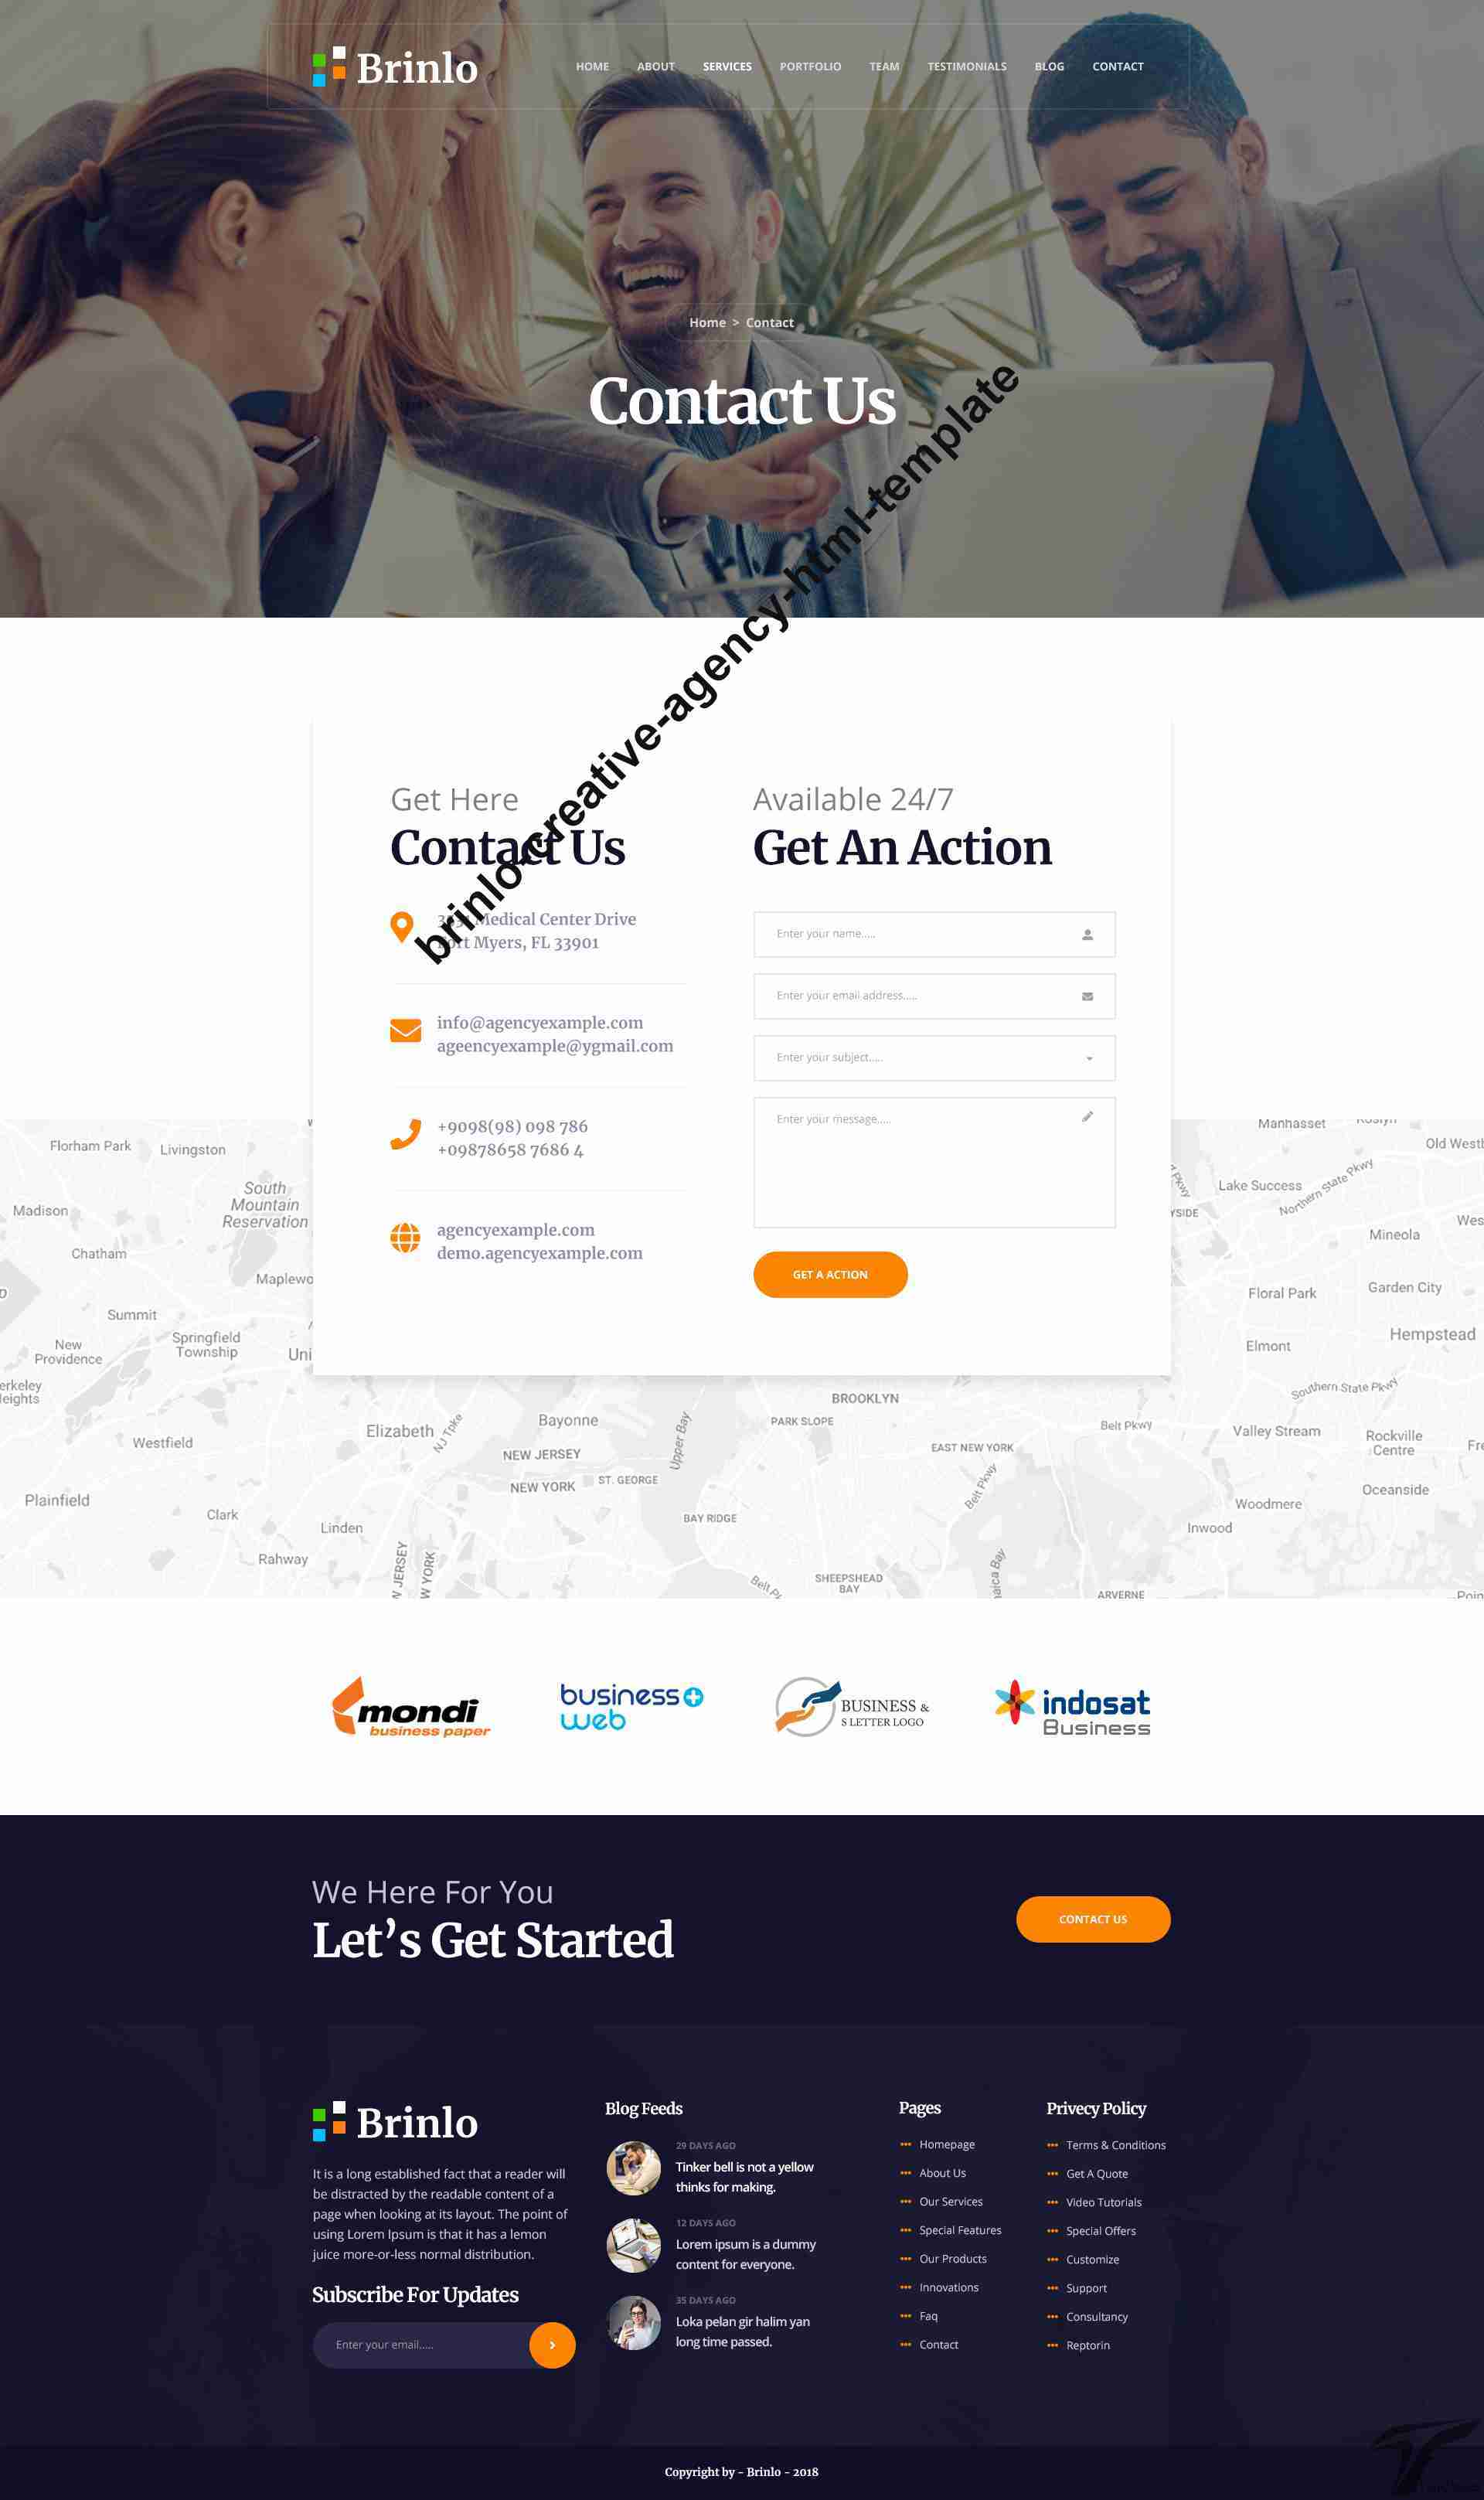 https://images.besthemes.com/images/h1_brinlo-creative-agency-html-template8-_-254099727/prevew_images/07_contact.jpg